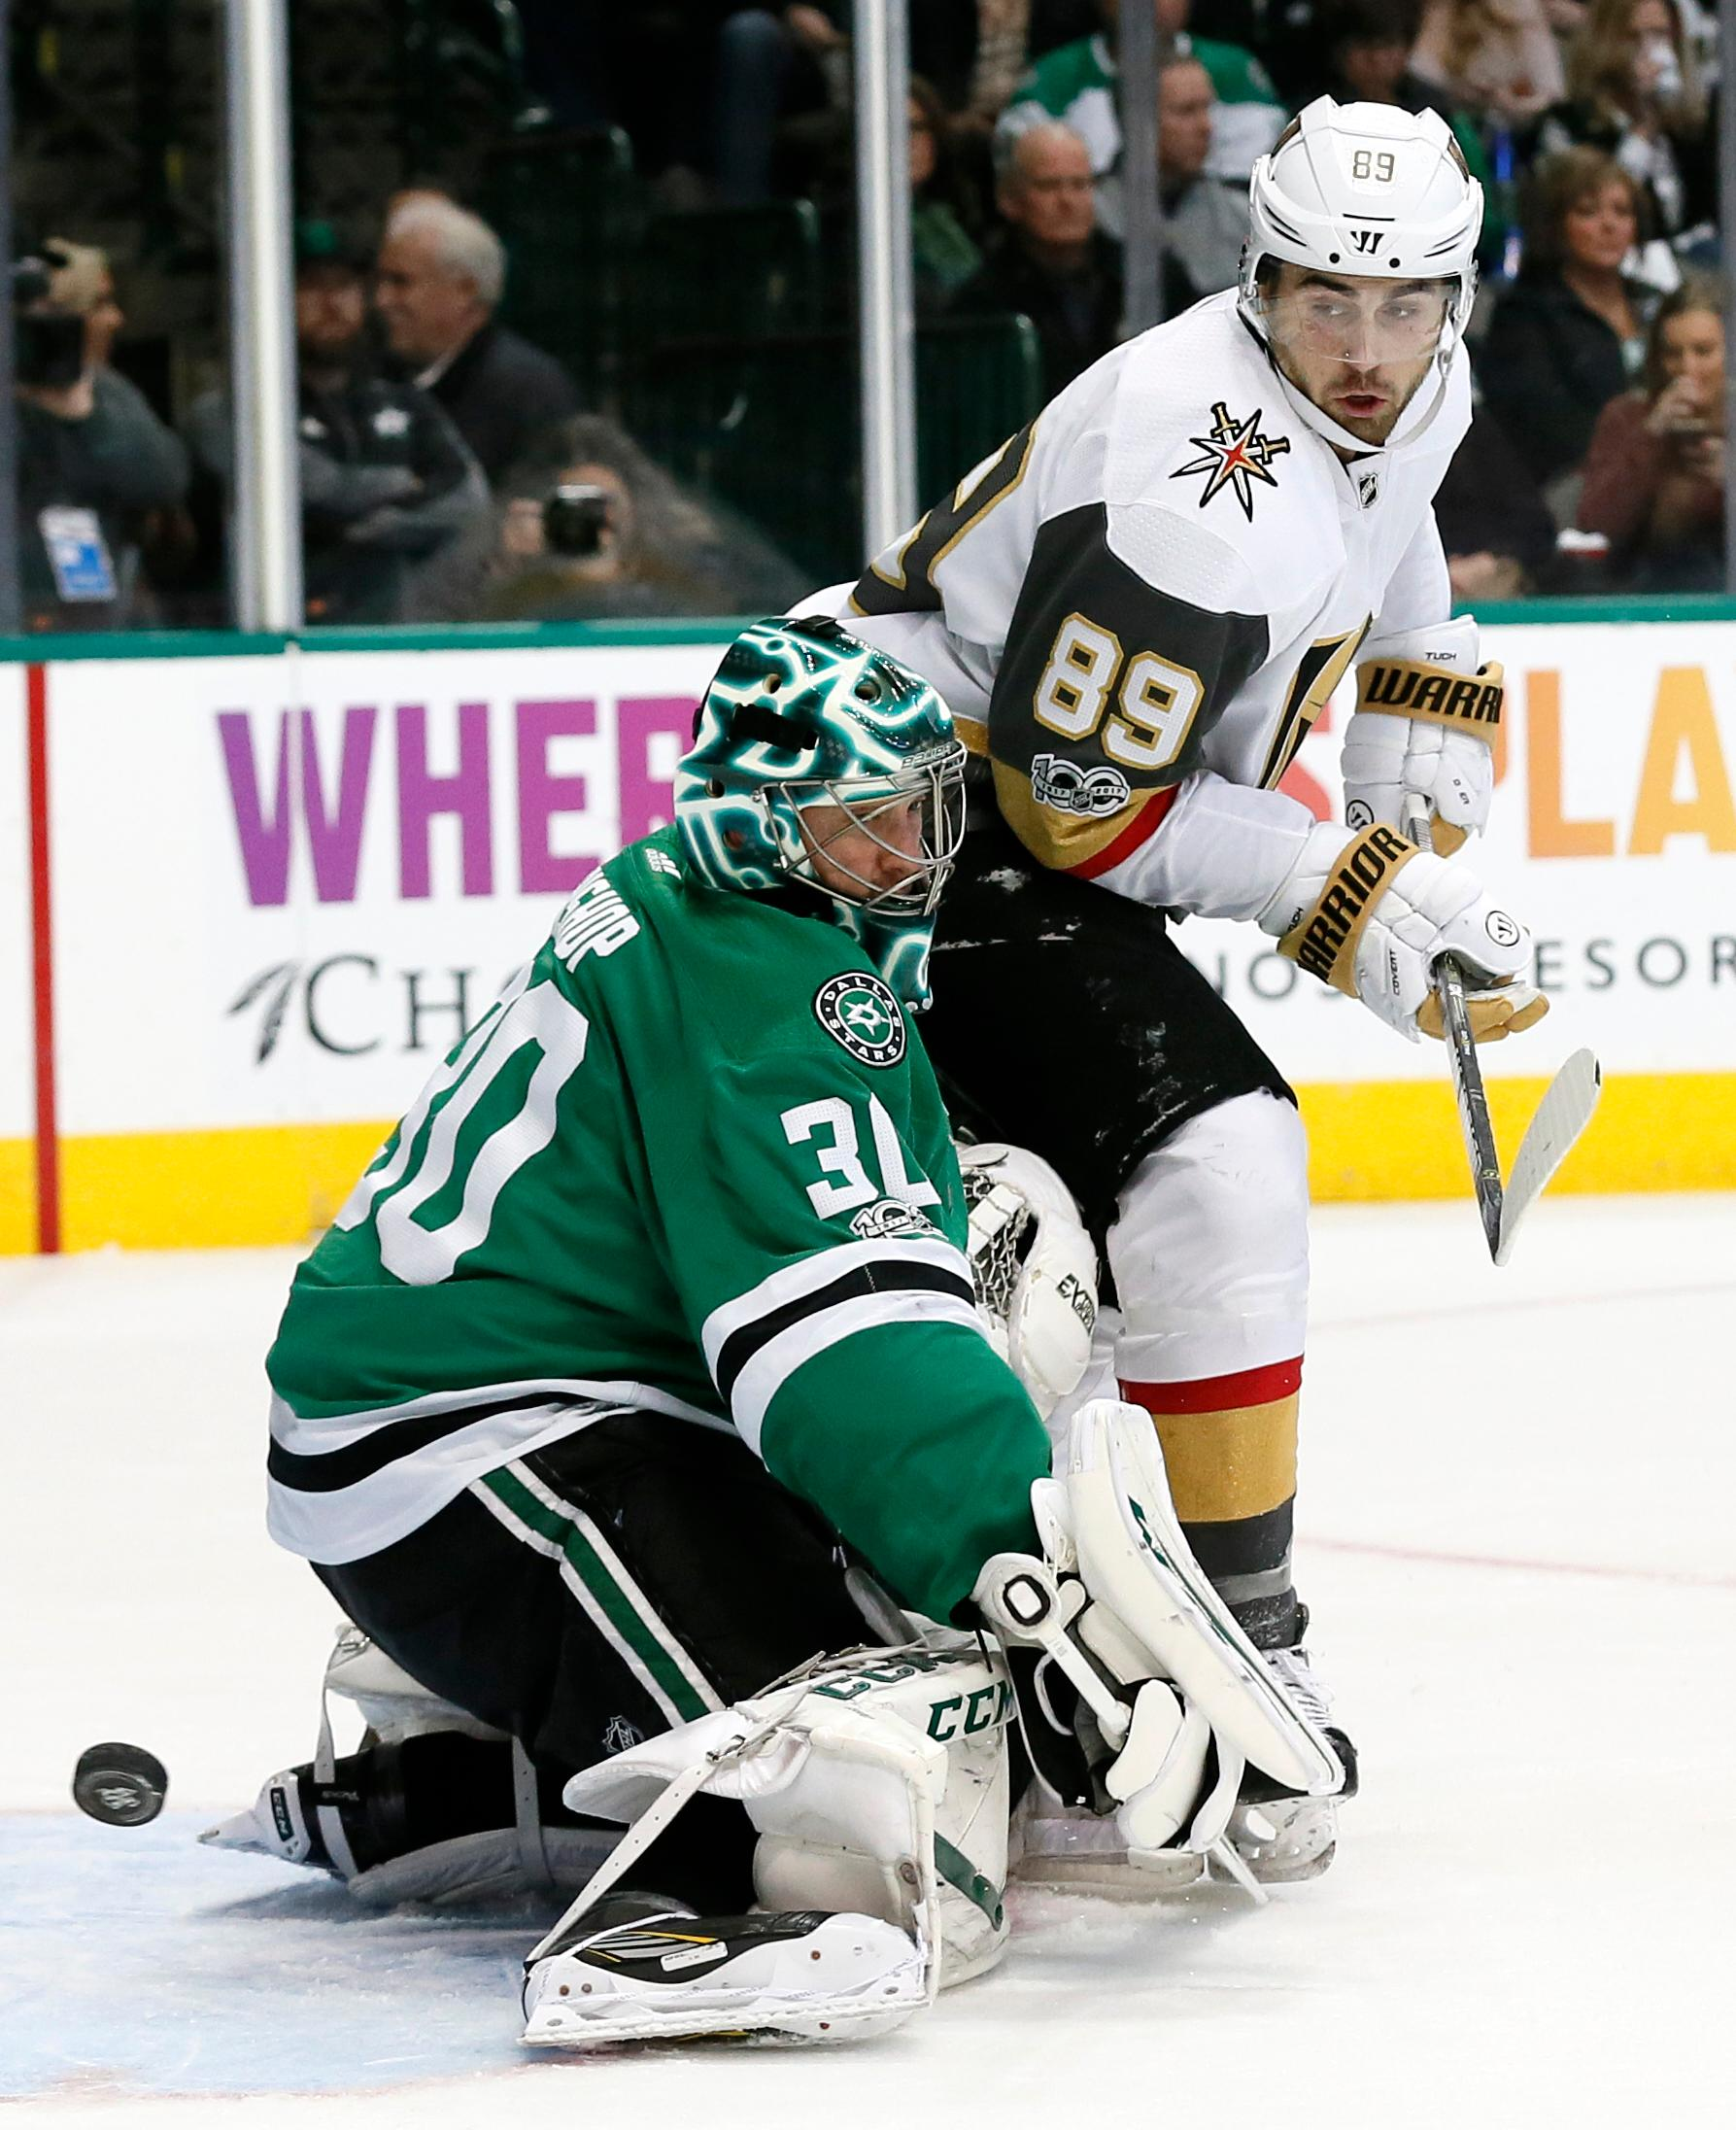 Dallas Stars goalie Ben Bishop (30) deflects a shot as Vegas Golden Knights right wing Alex Tuch (89) watches during the second period of an NHL hockey game, Saturday, Dec. 9, 2017, in Dallas. (AP Photo/Tony Gutierrez)